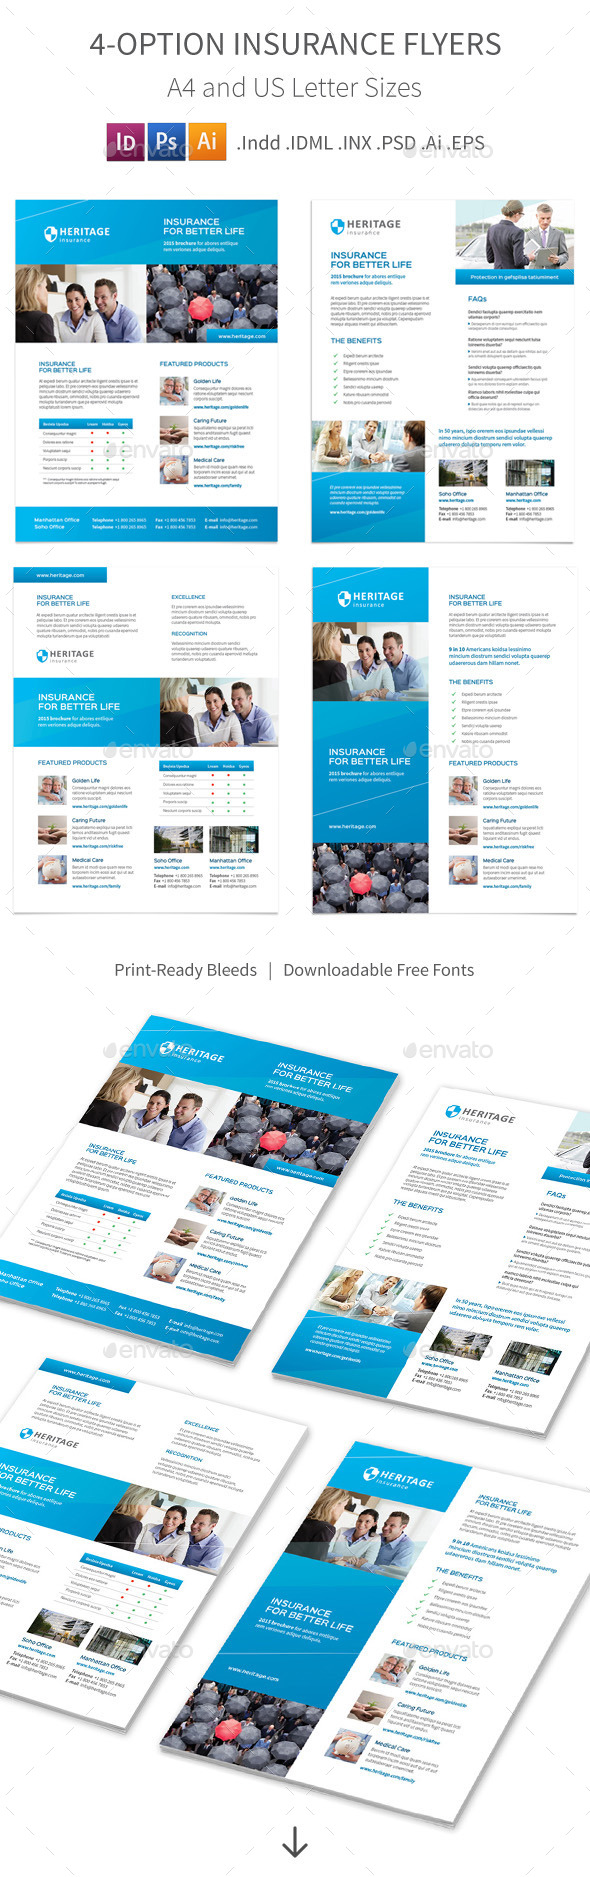 Insurance Company Flyers – 4 Options - Corporate Flyers